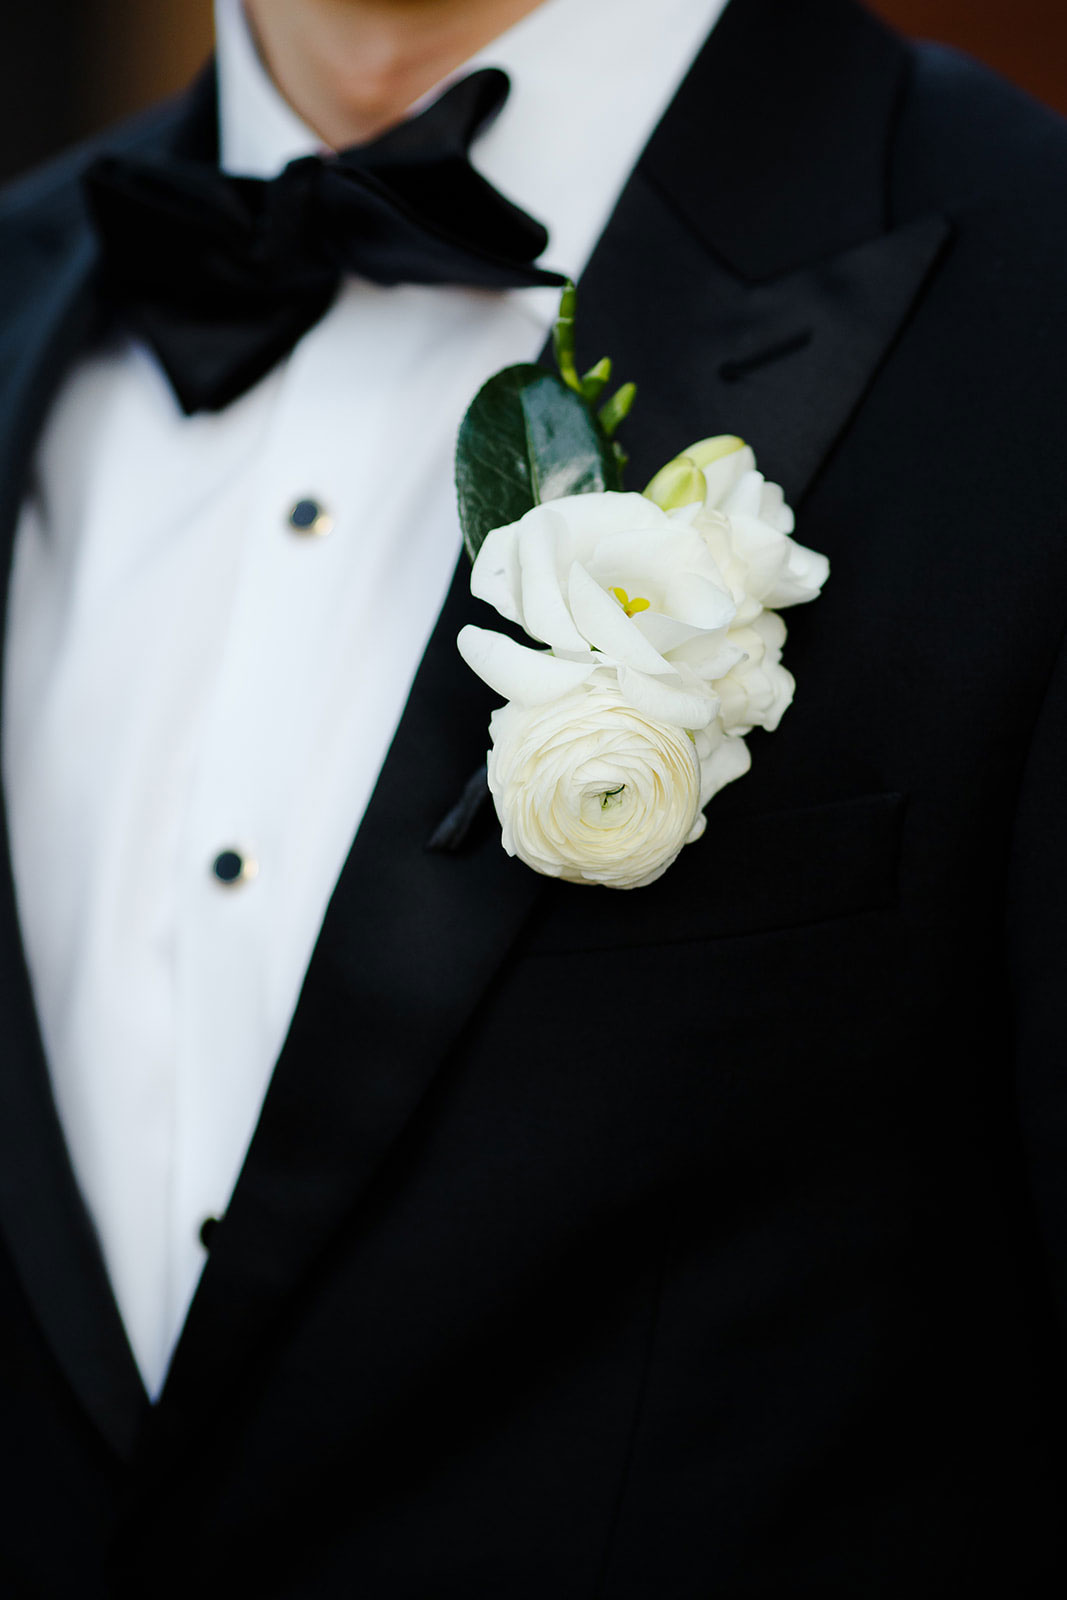 wedding detail shot photo of boutonniere on groom lapel